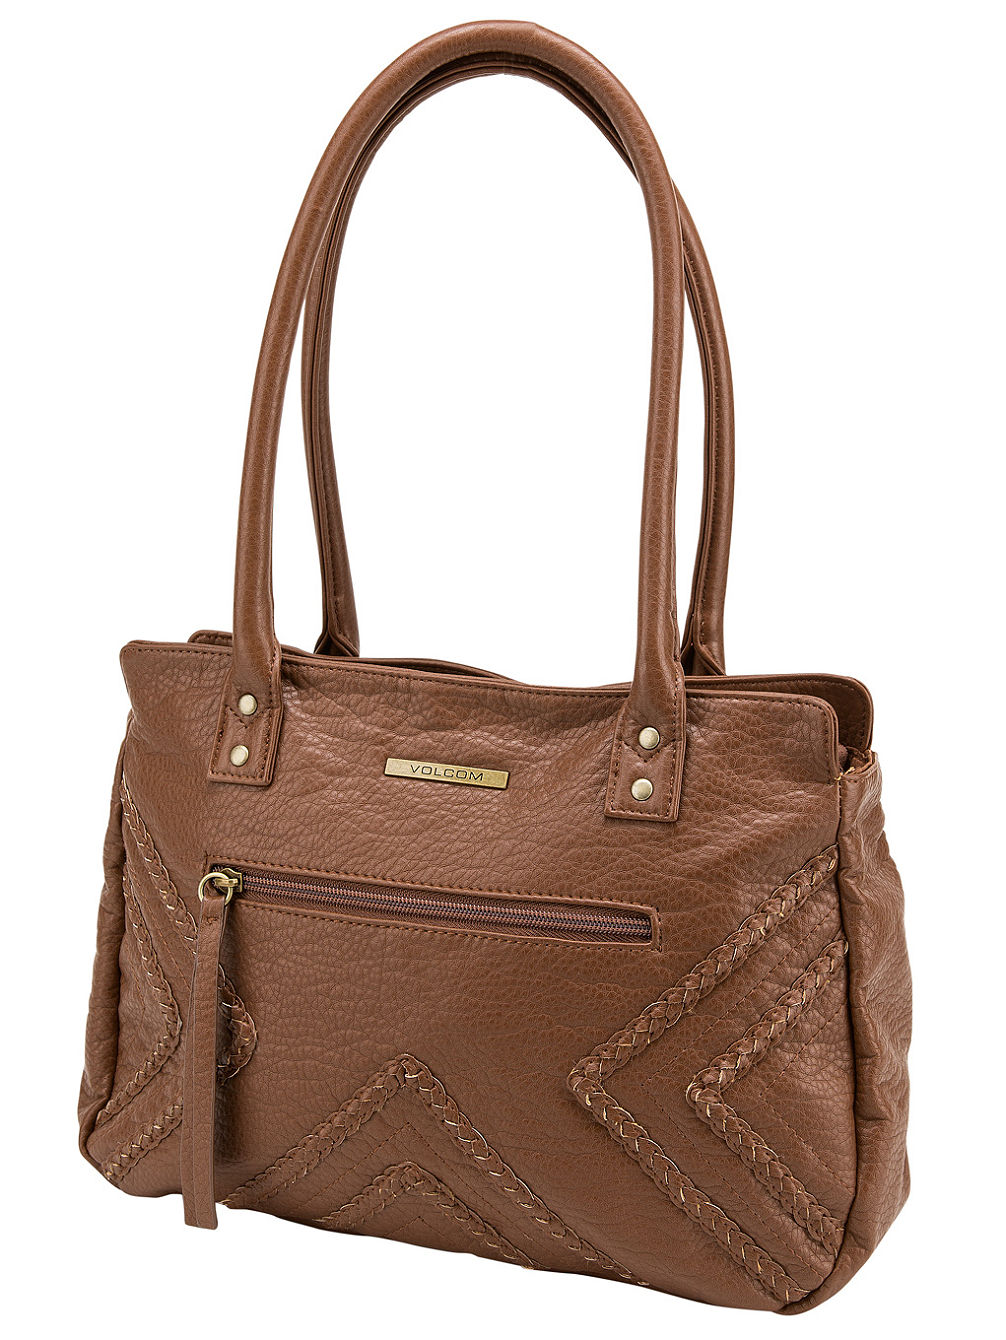 City Girl Hand Bag